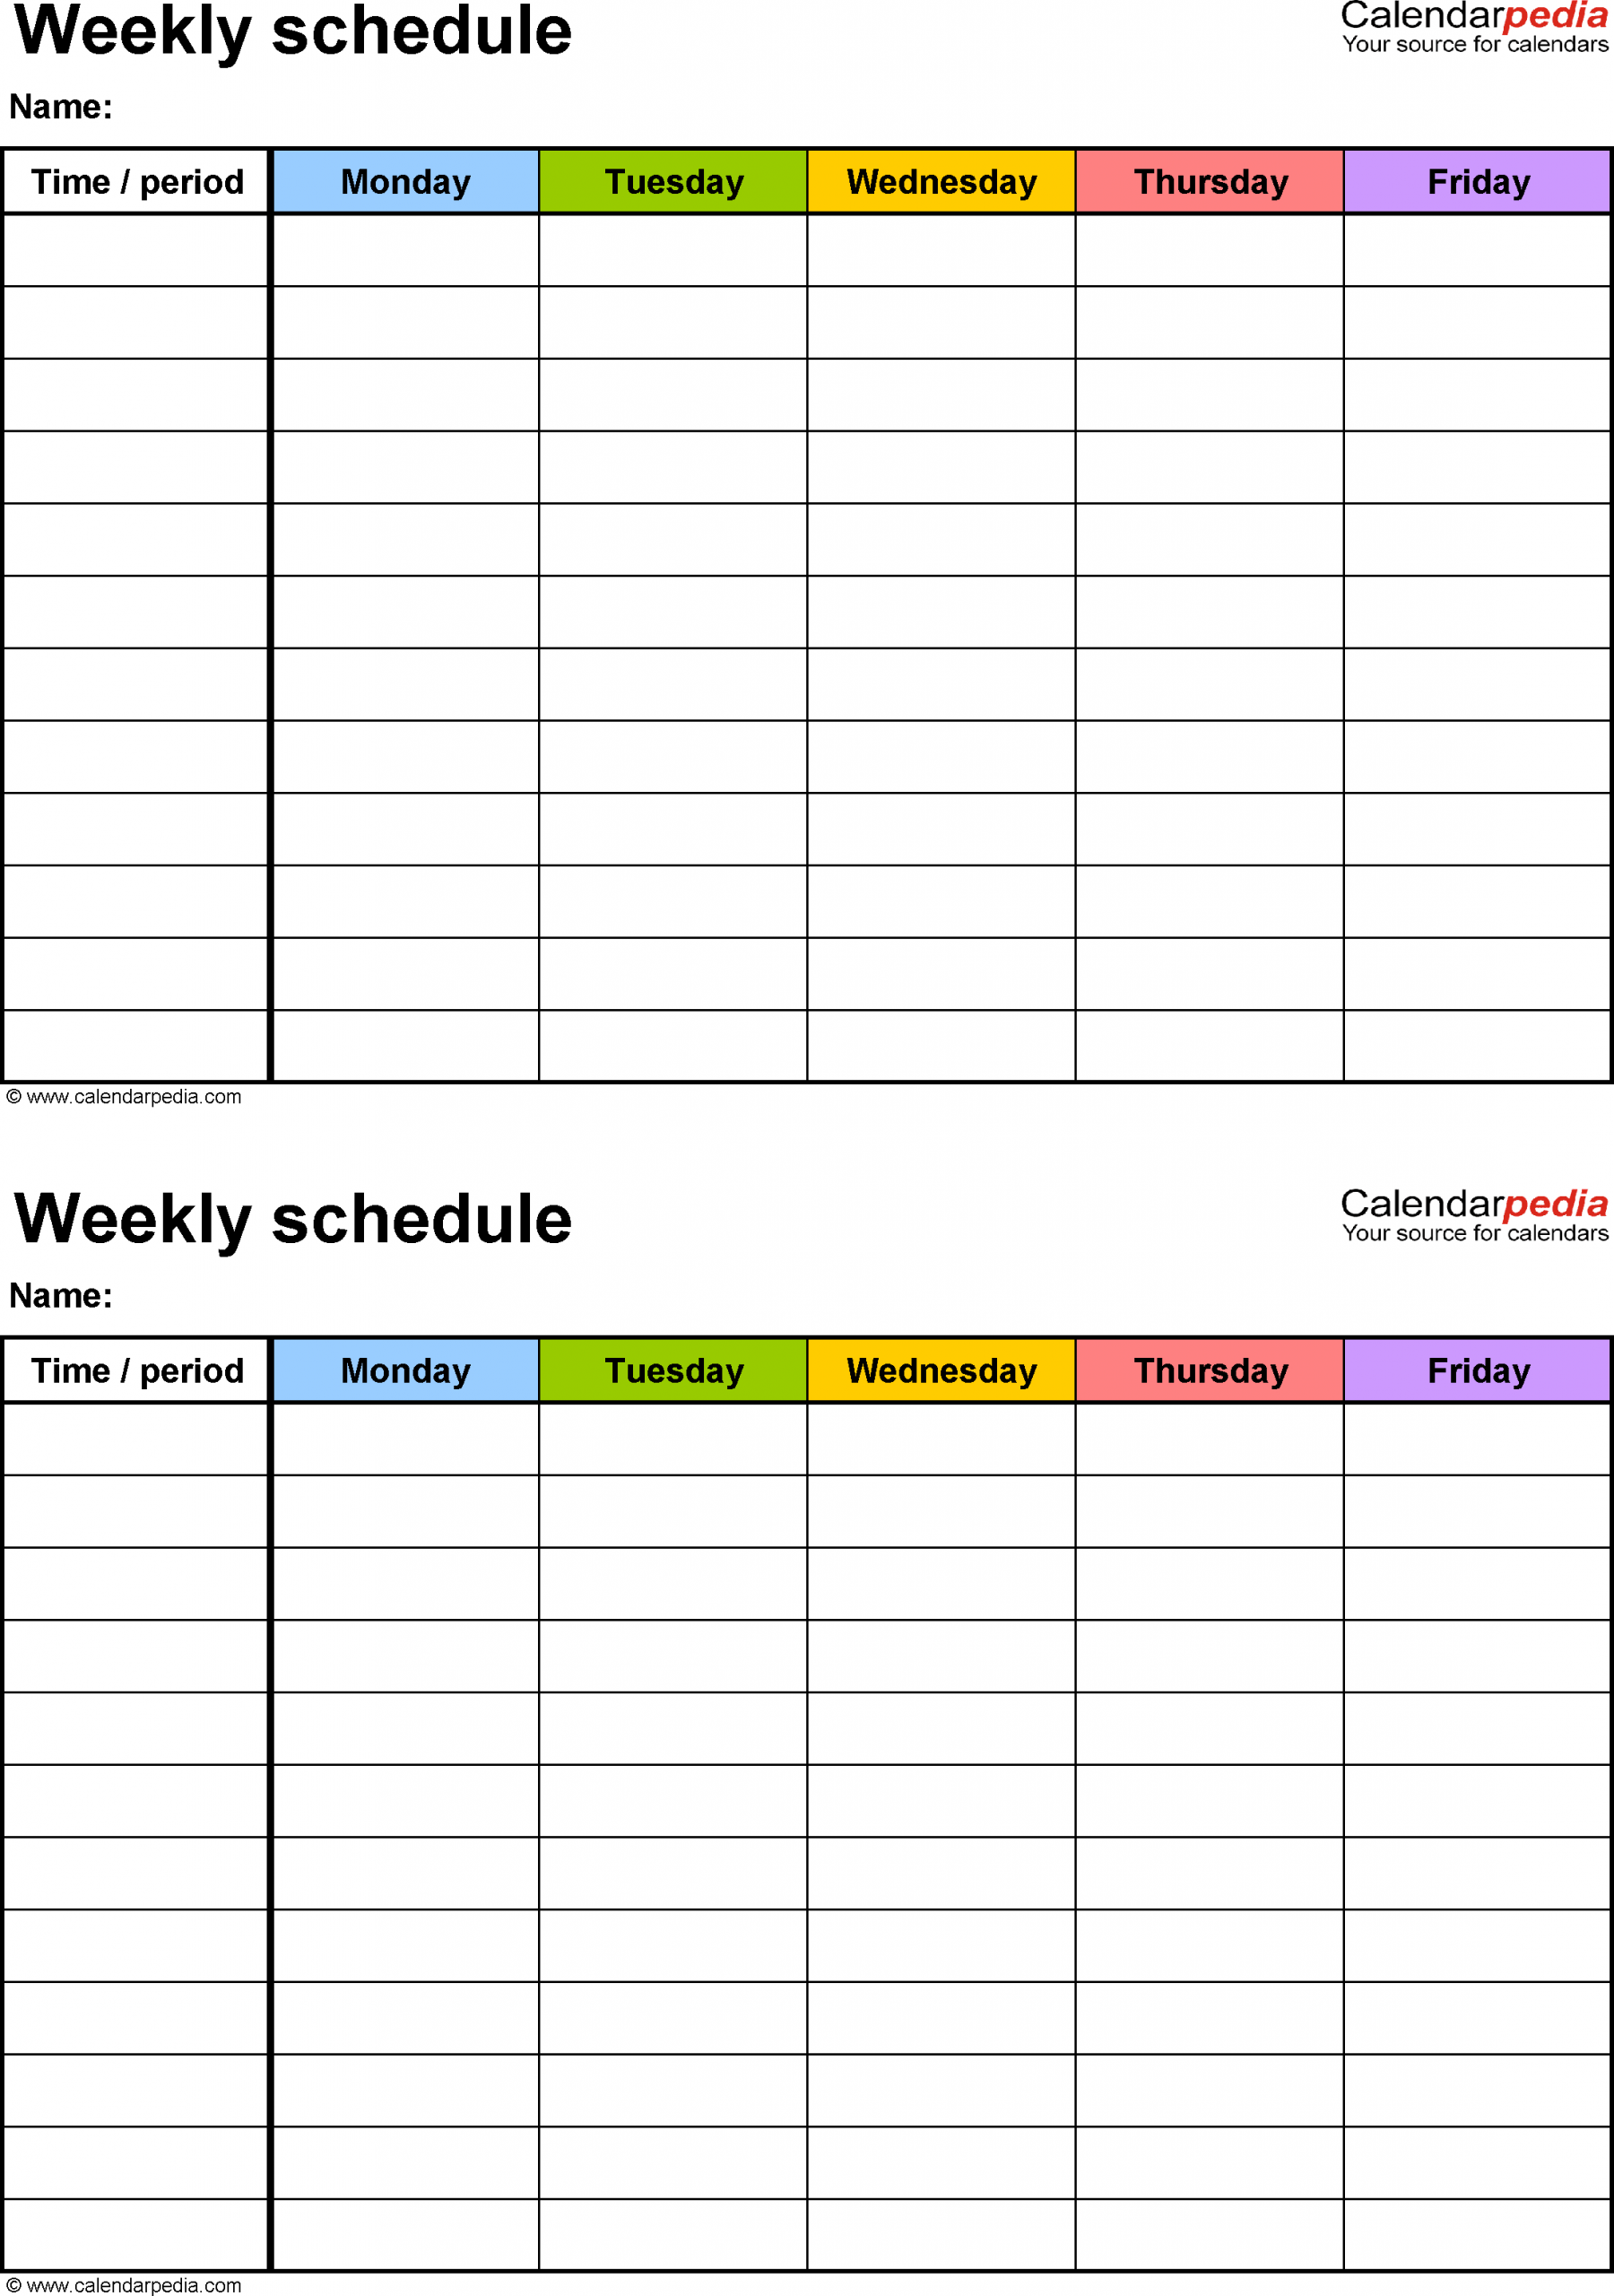 Weekly Schedule Template For Excel Version 3: 2 Schedules One Week Lined Schedule